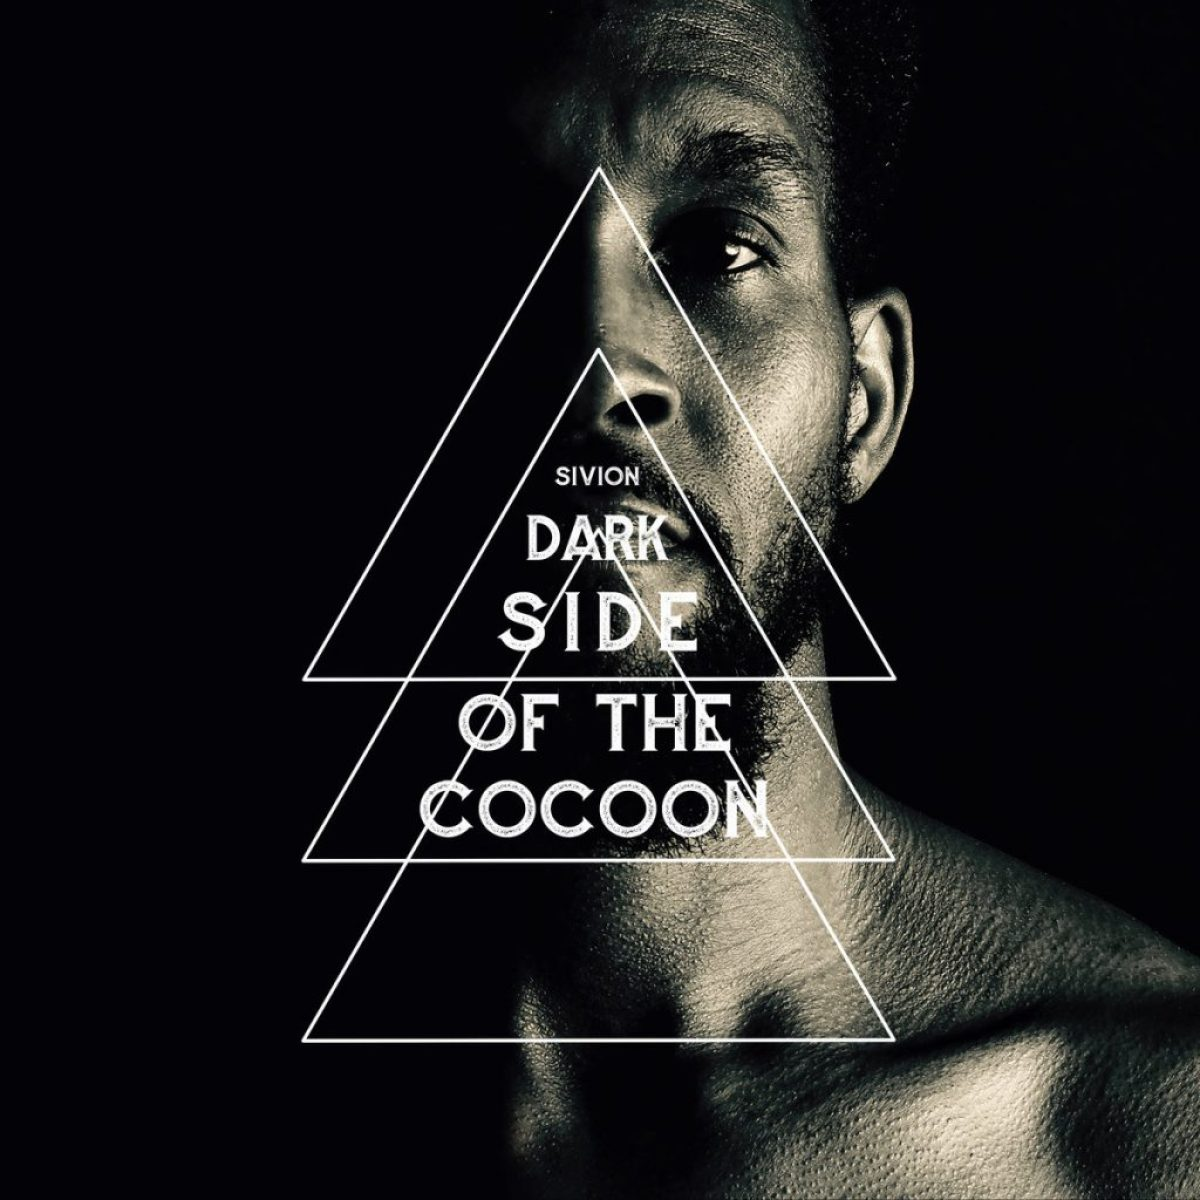 sivion-dark-side-of-the-cocoon